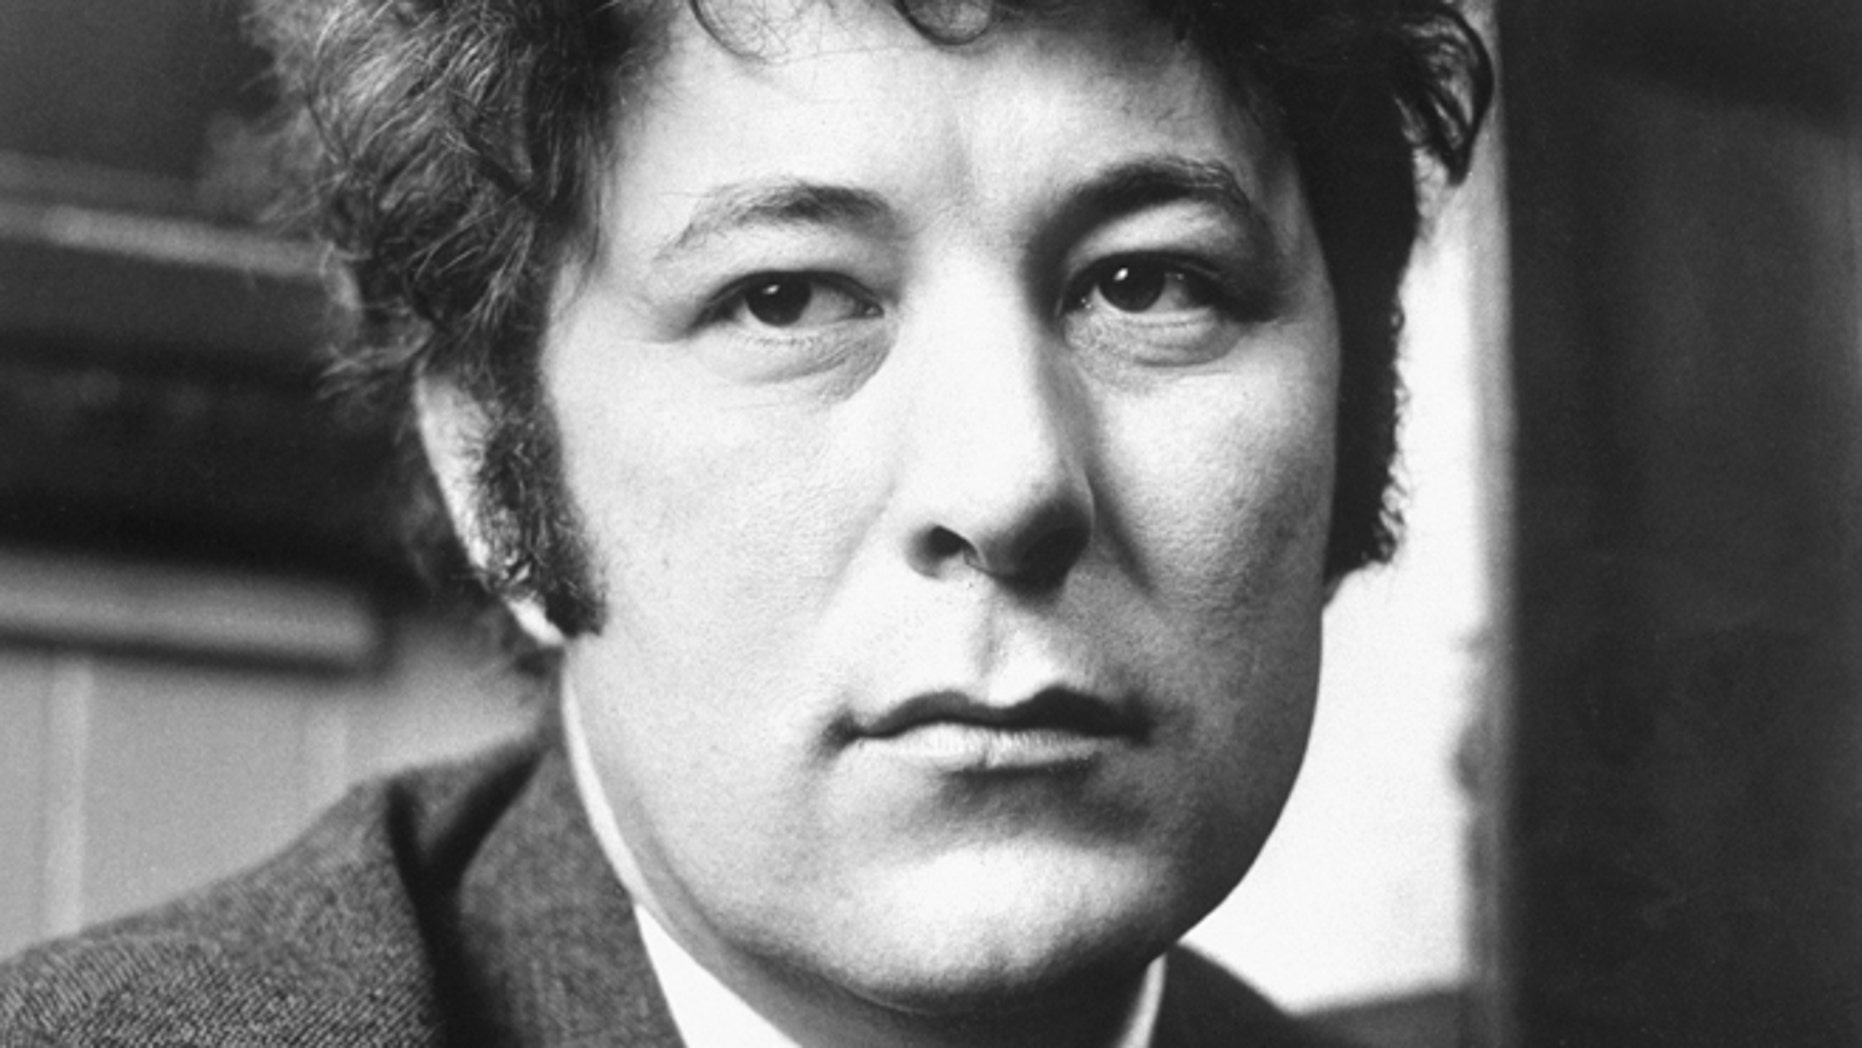 Seamus Heaney, seen here in 1970, was Ireland's foremost poet who won the Nobel literature prize in 1995. He died Friday after a half-century exploring the wild beauty of Ireland and the political torment within the nation's soul. He was 74. (AP/PA file)